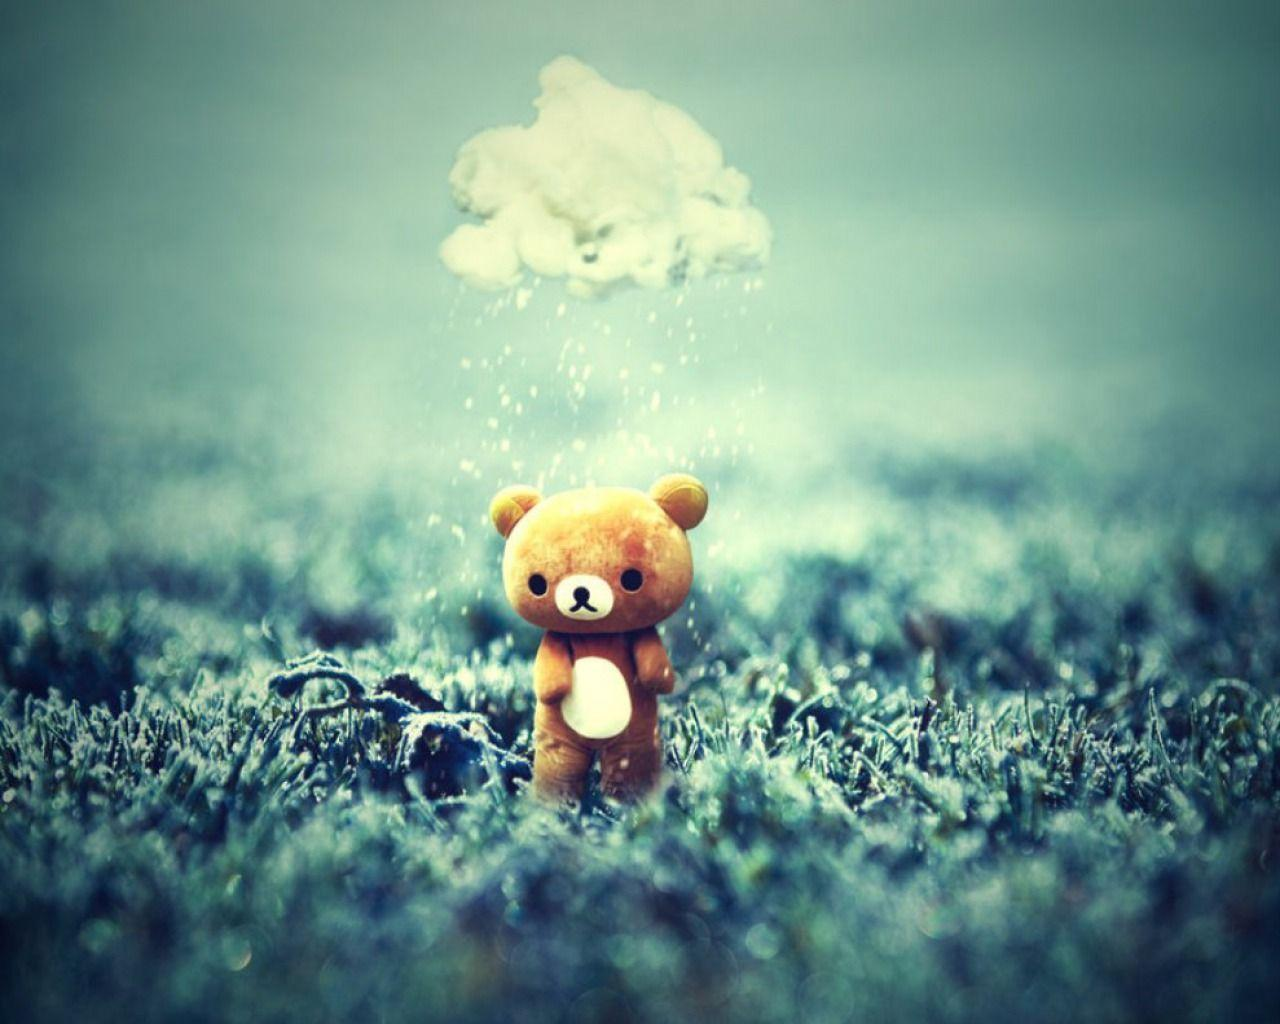 Desktop Wallpaper Alone Love : Teddy Bear Love Wallpapers - Wallpaper cave